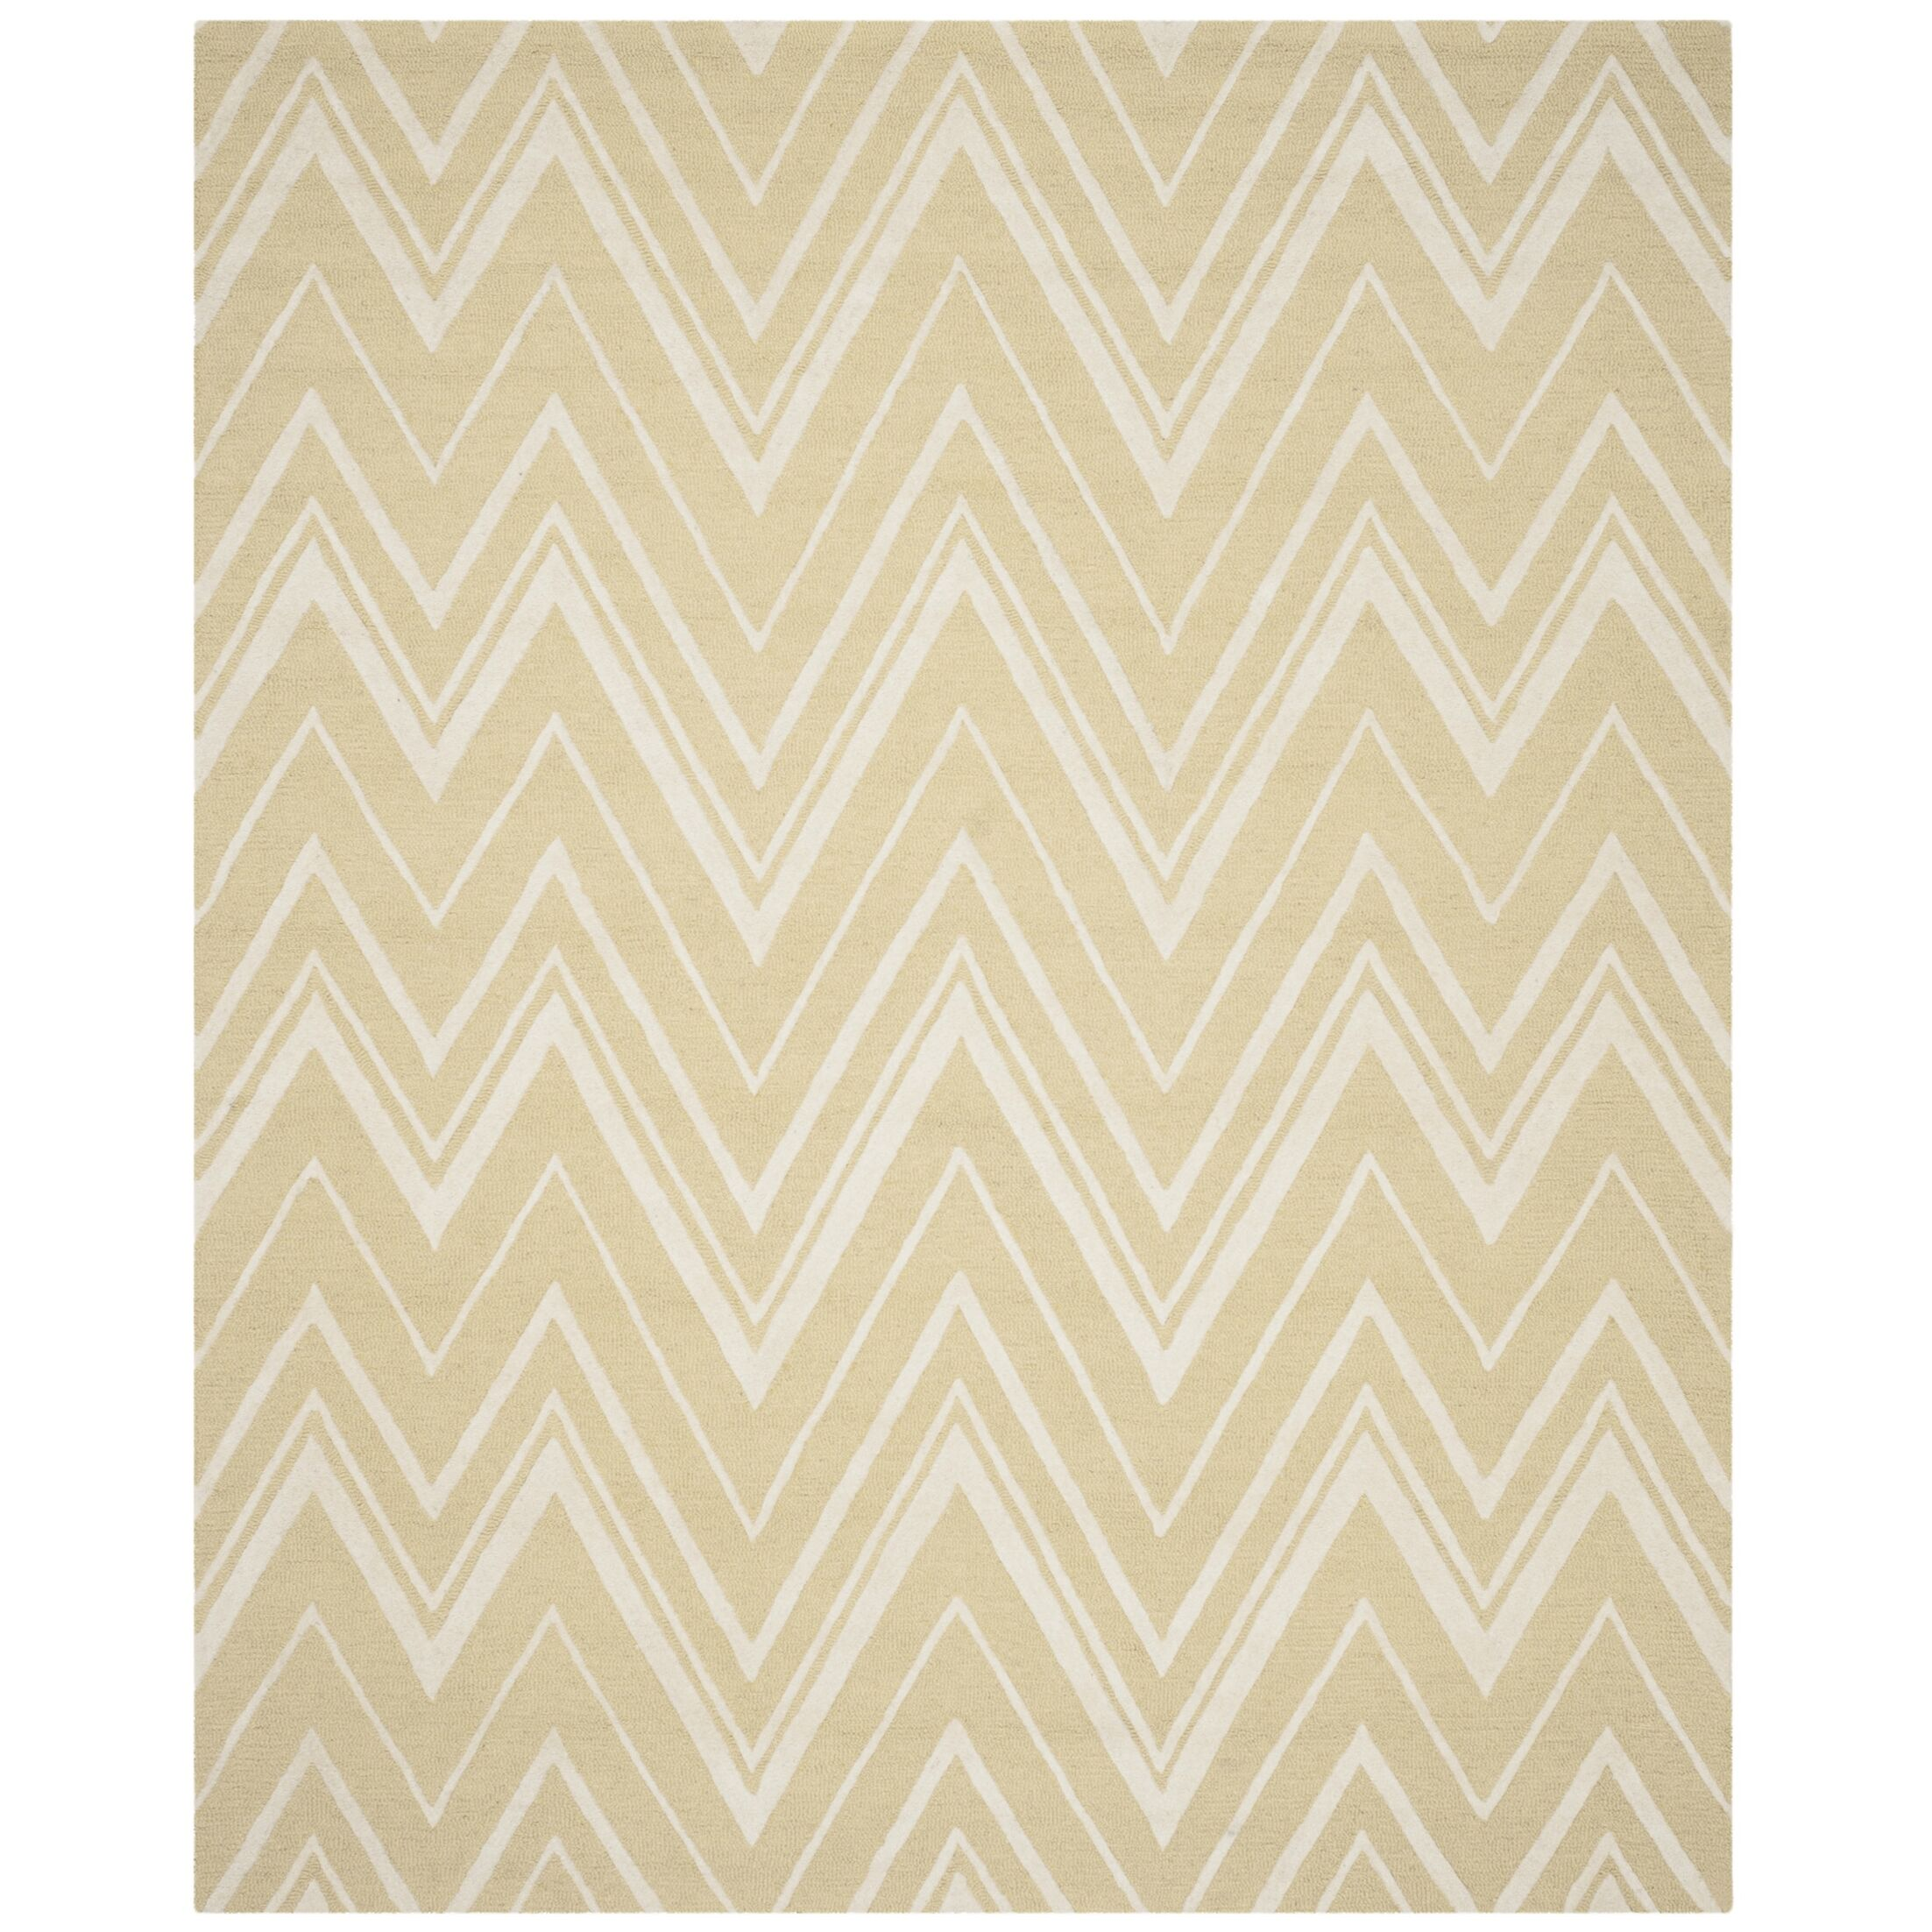 Martins Hand-Tufted Light Gold/Ivory Area Rug Rug Size: Rectangle 8' x 10'